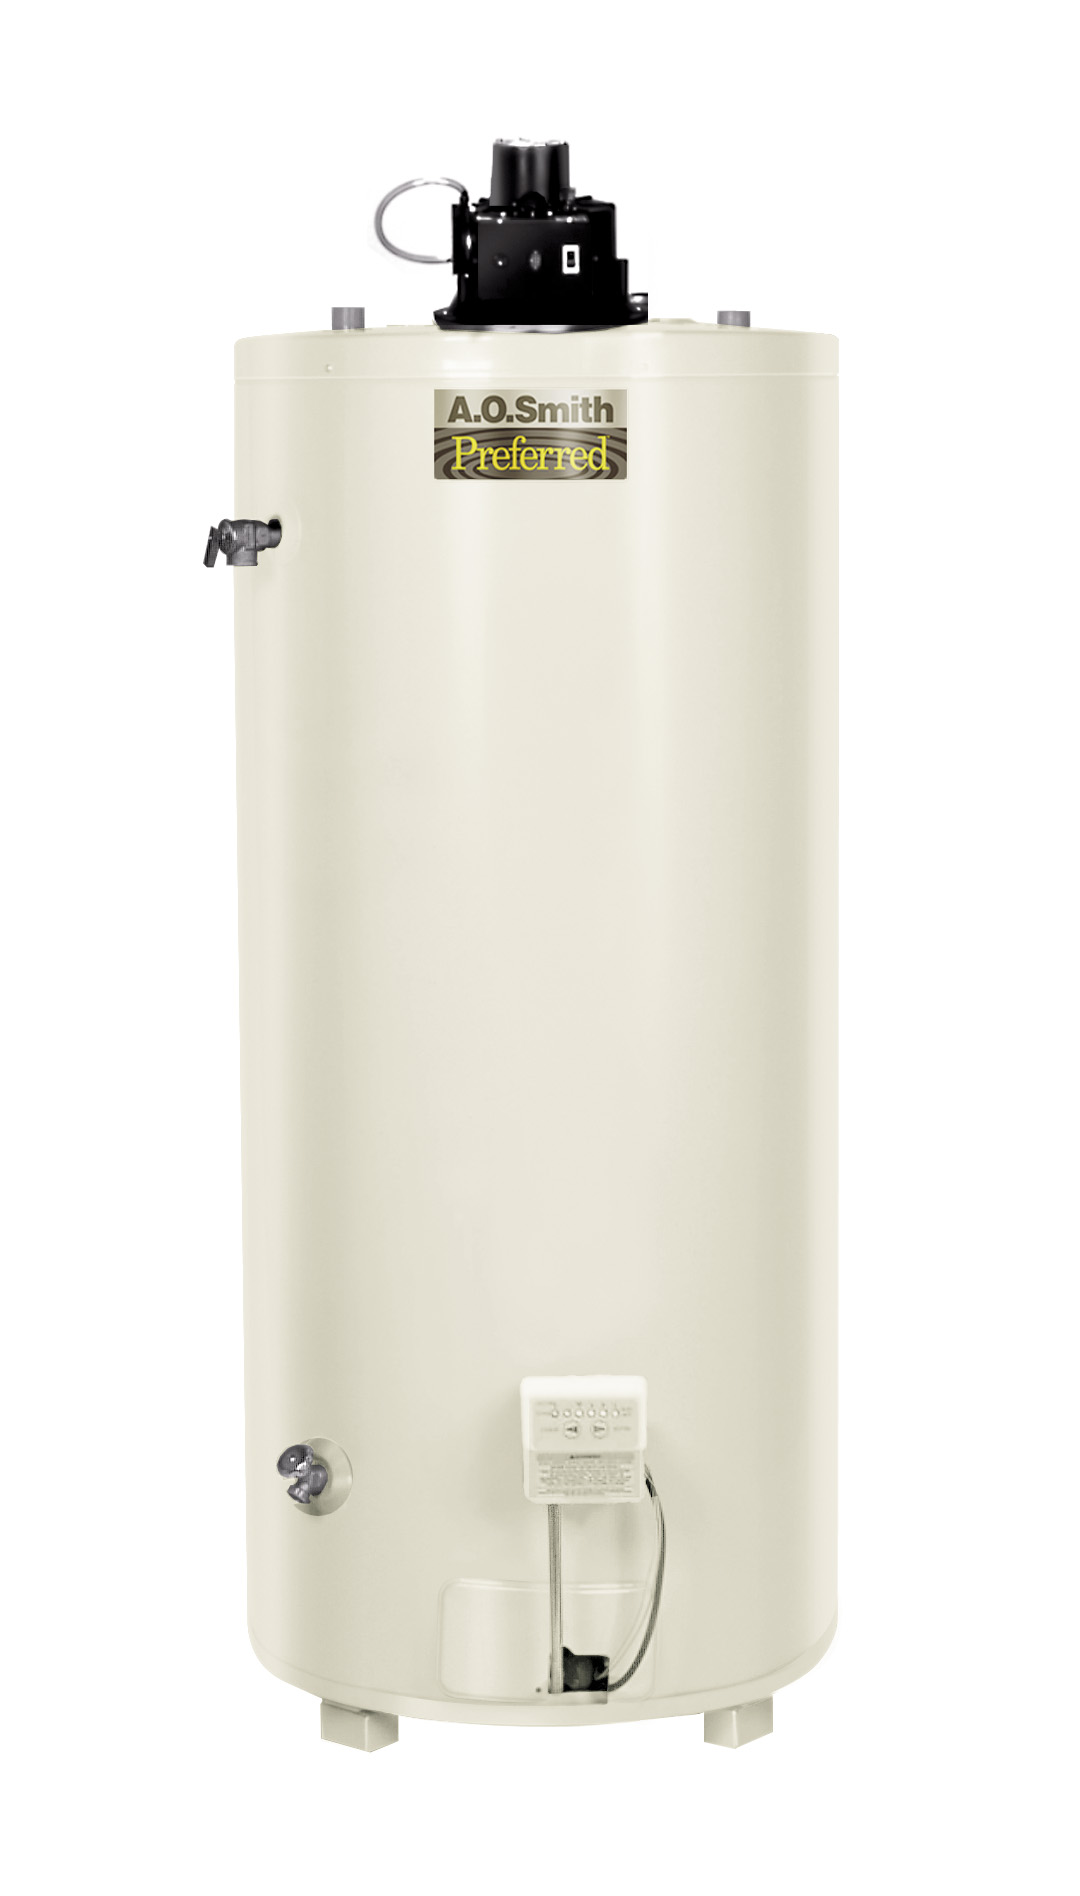 AO SMITH BTF-80: 74 GALLON, 76,500 BTU, 4inch VENT, CONSERVATIONIST POWER VENT SINGLE FLUE, NATURAL GAS COMMERICAL WATER HEATER